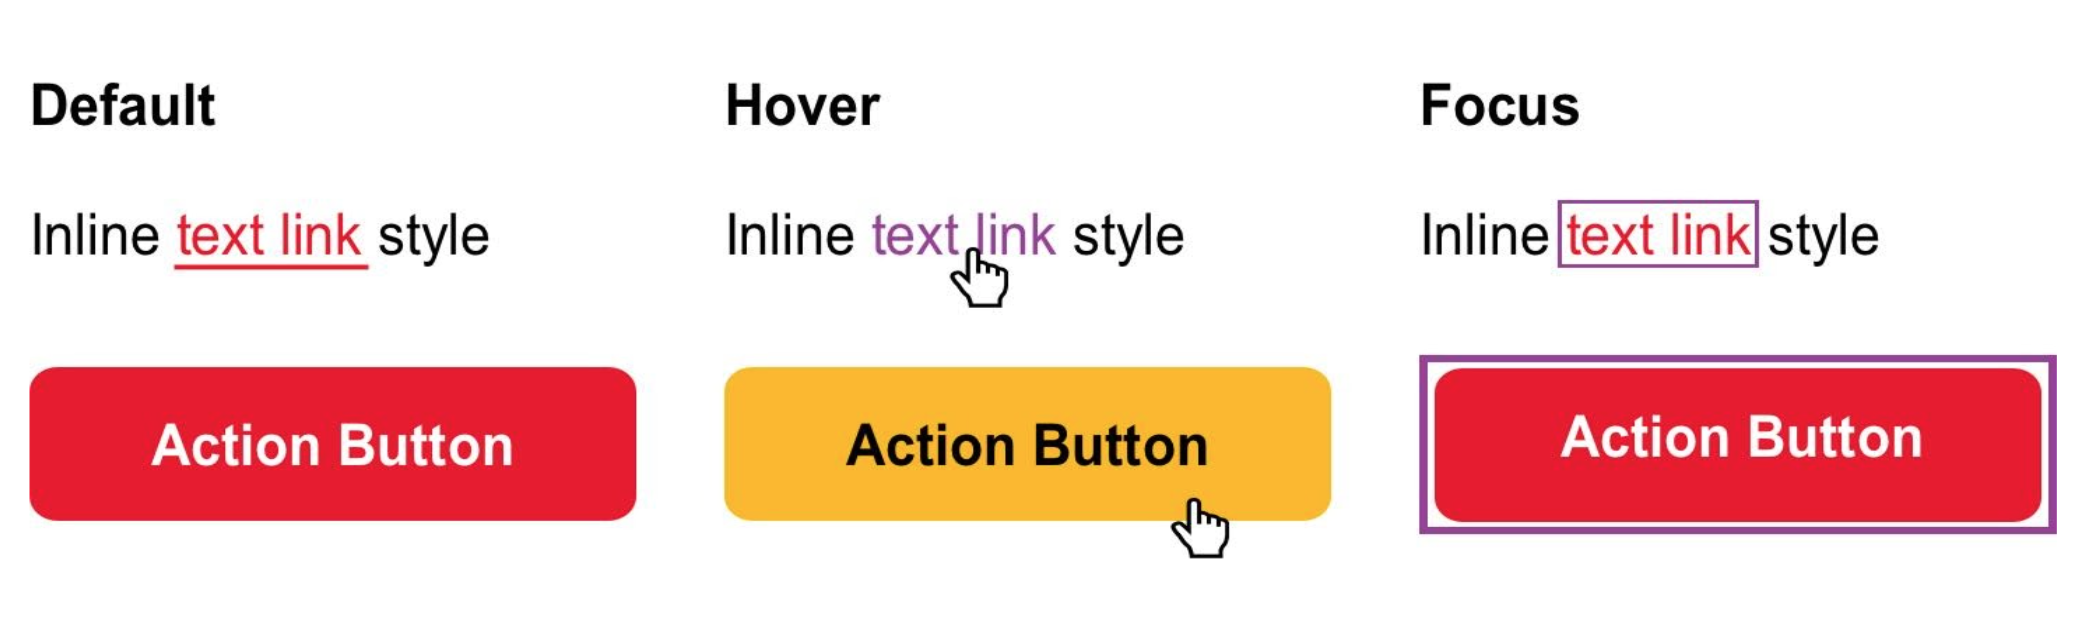 Default, hover, and focus state examples for a text link and button-style link.